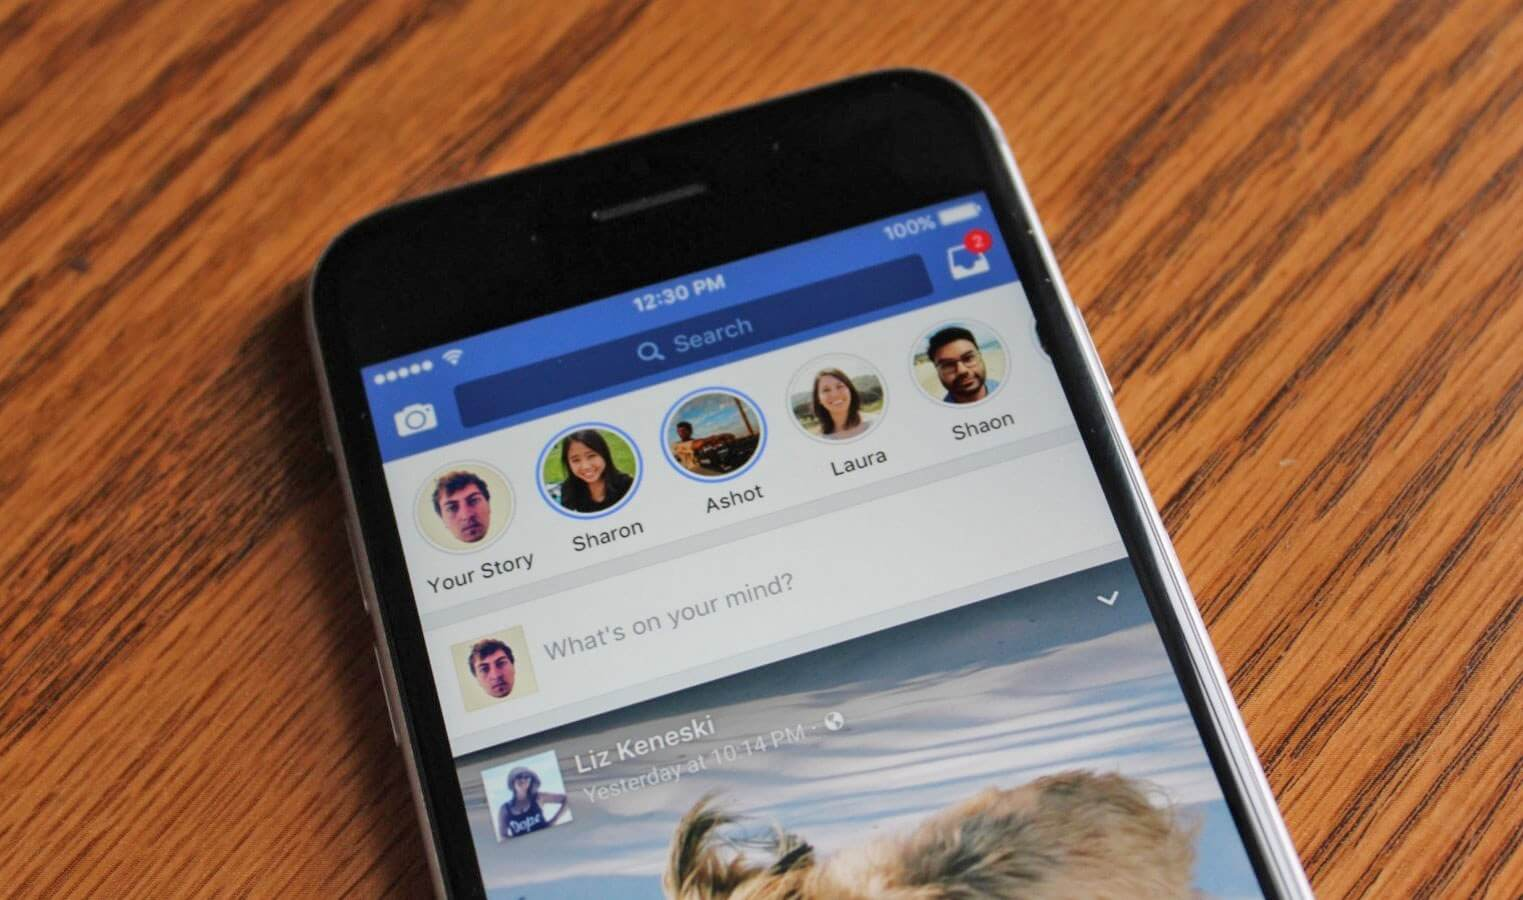 Facebook and Messenger's Stories feature passes 300 million daily users